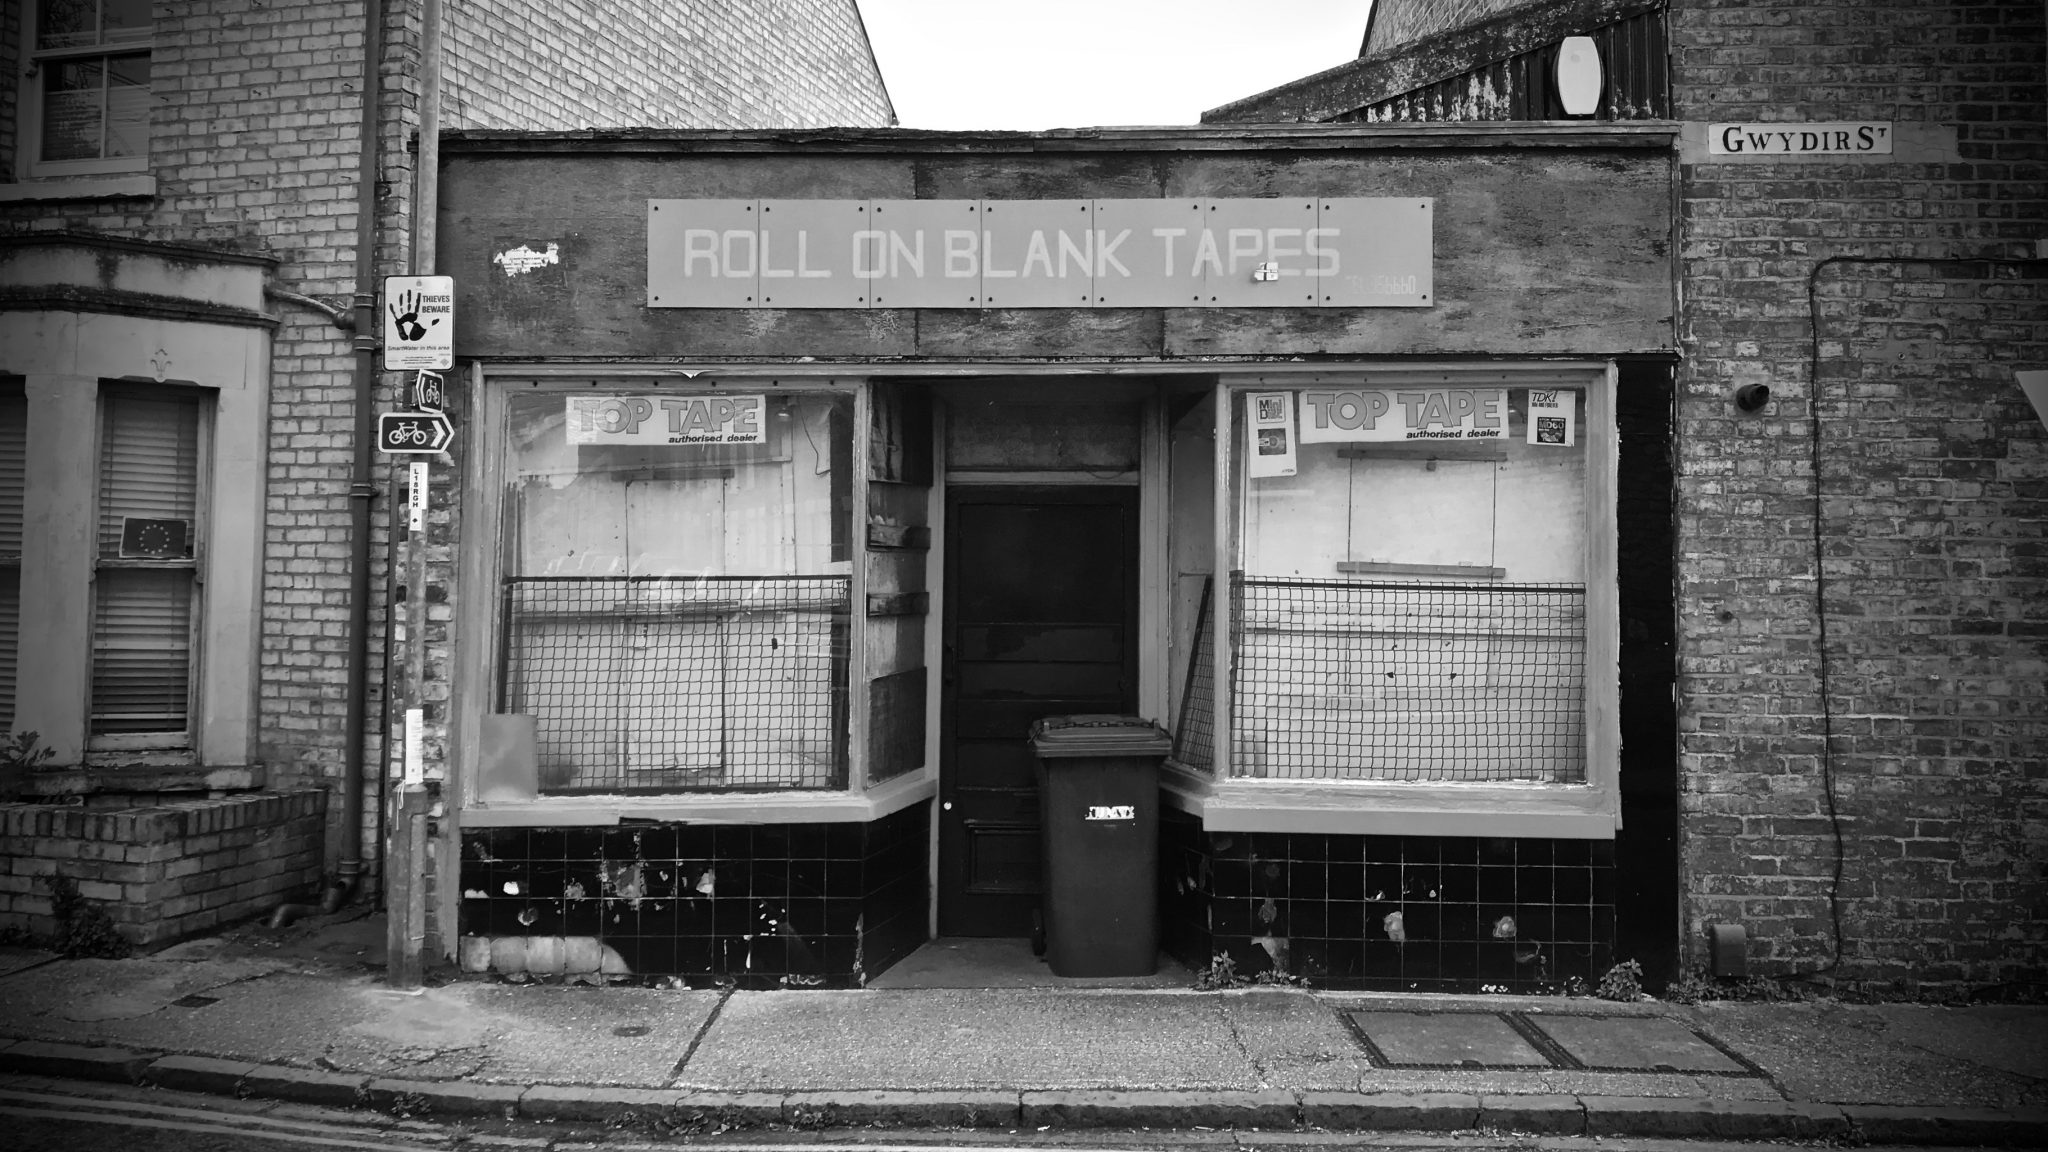 Roll On Blank Tapes, Gwydir street